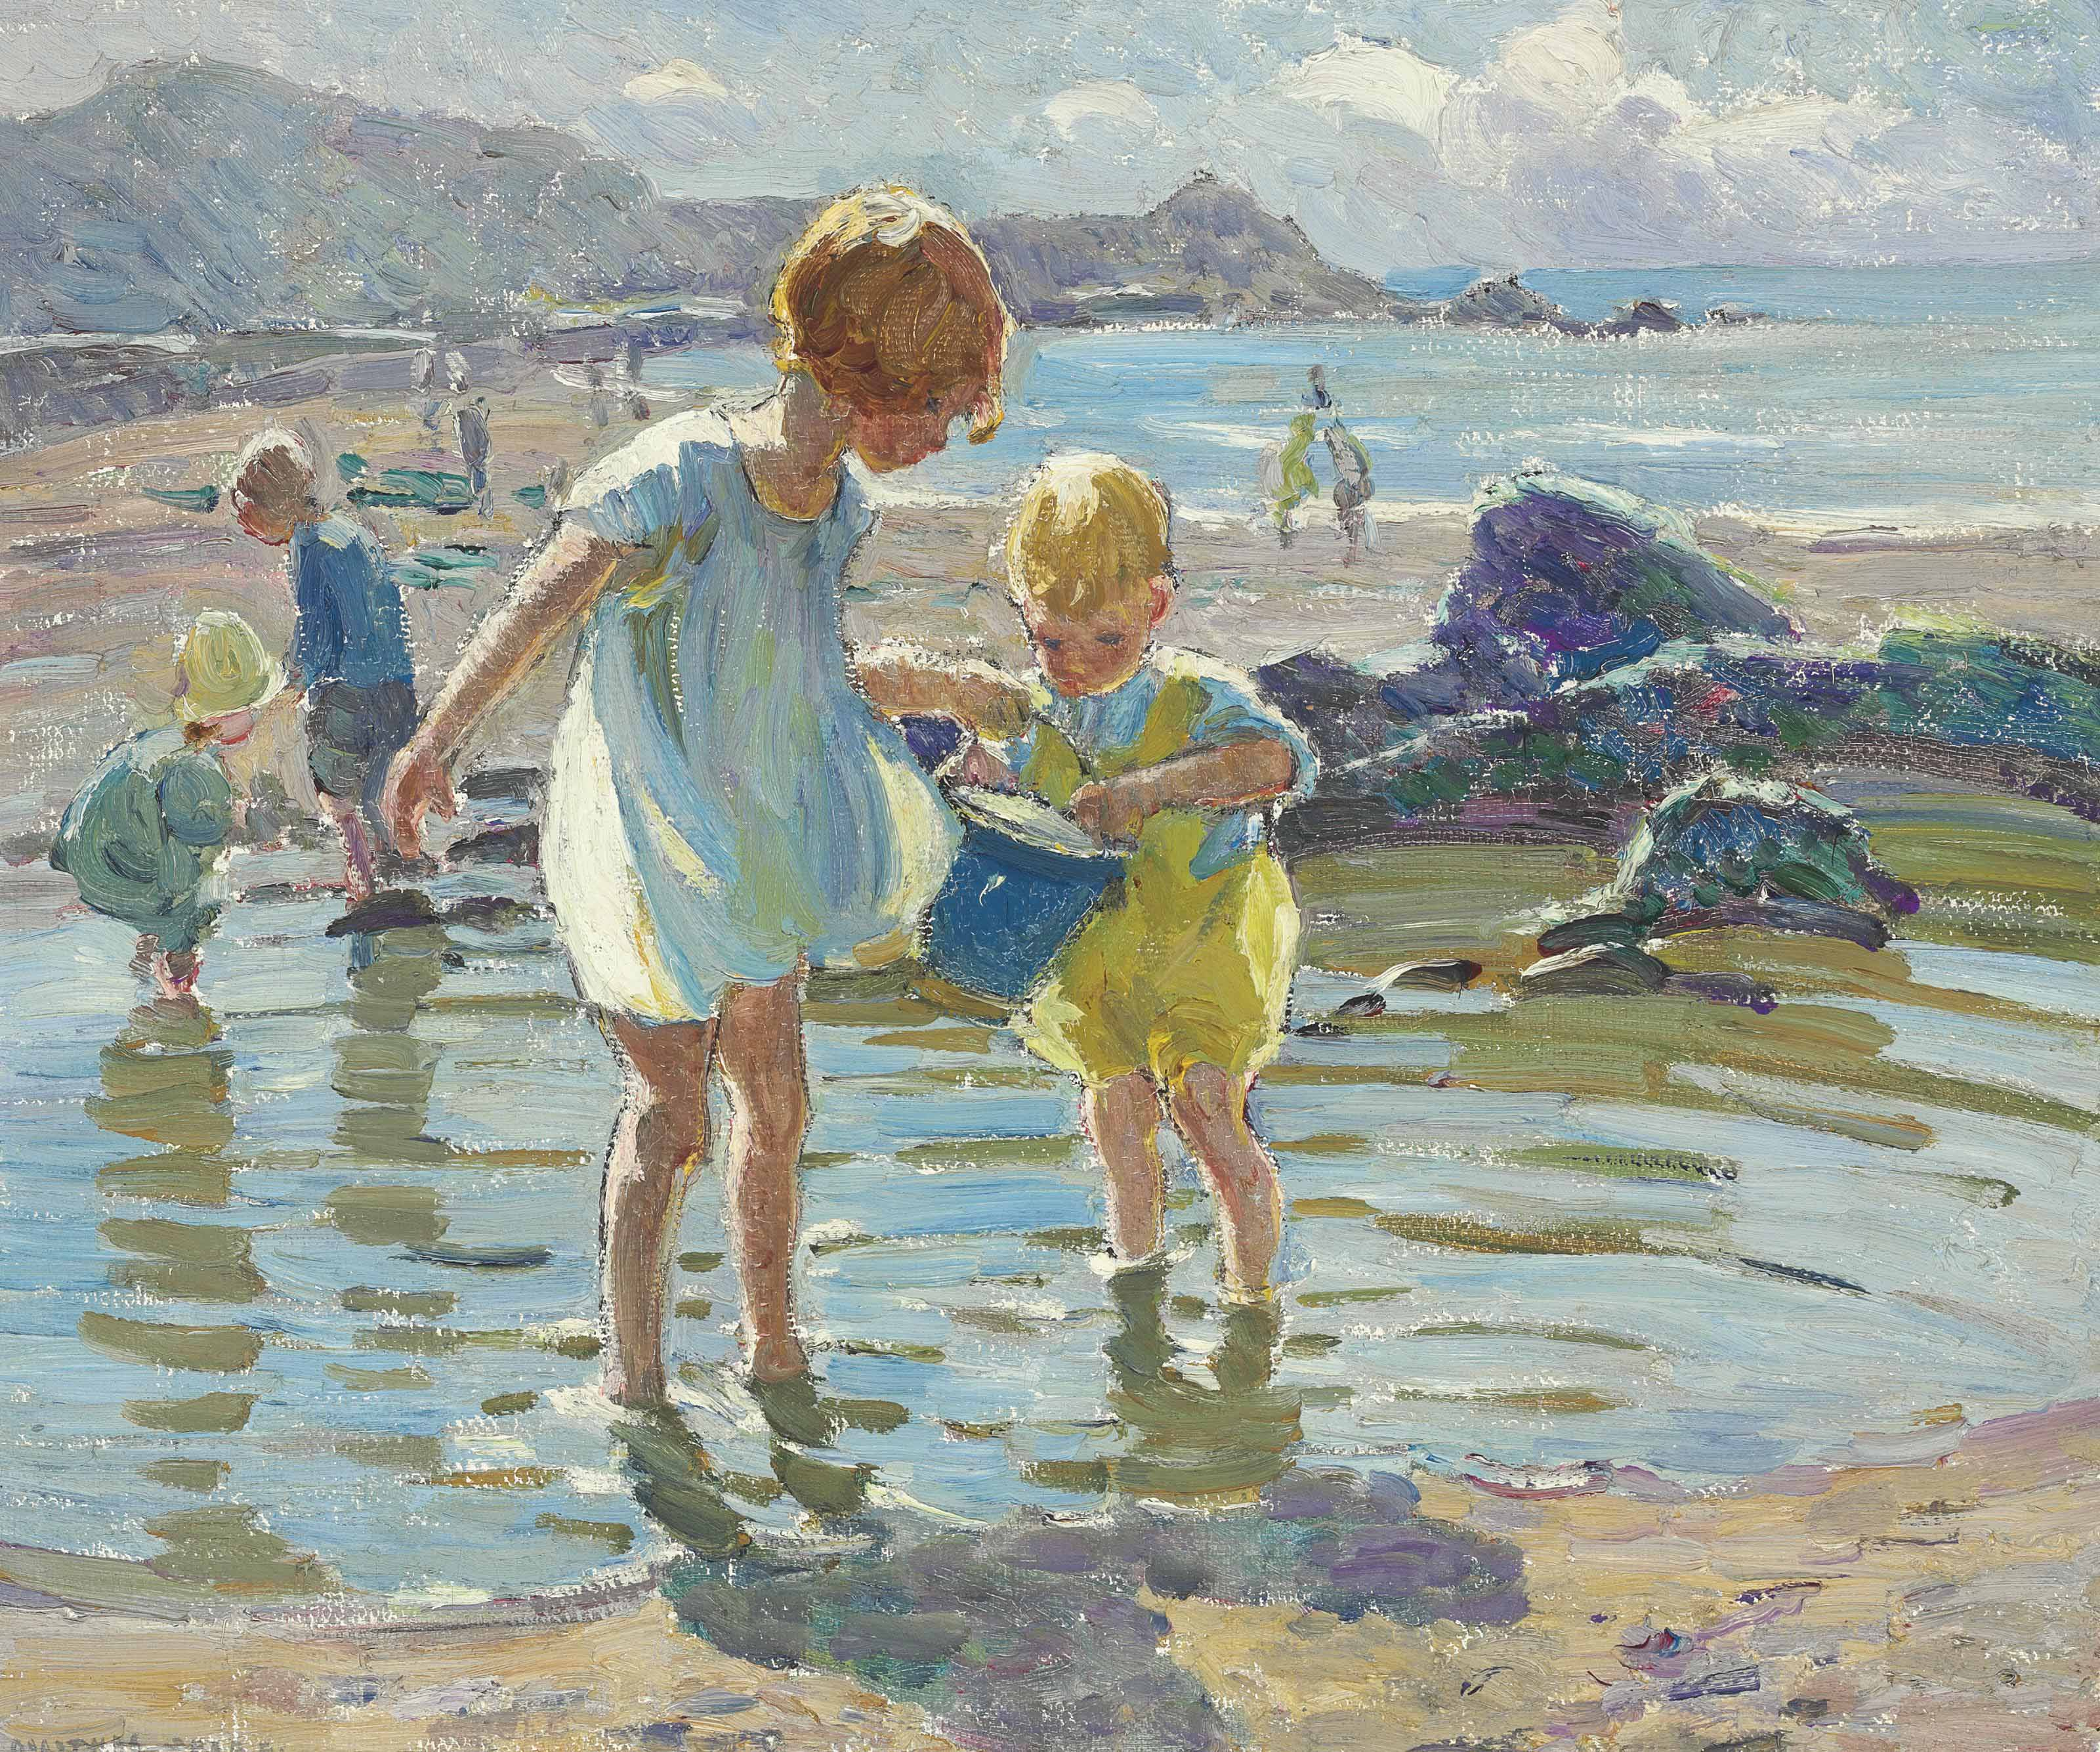 Dorothea Sharp (British, 1874-